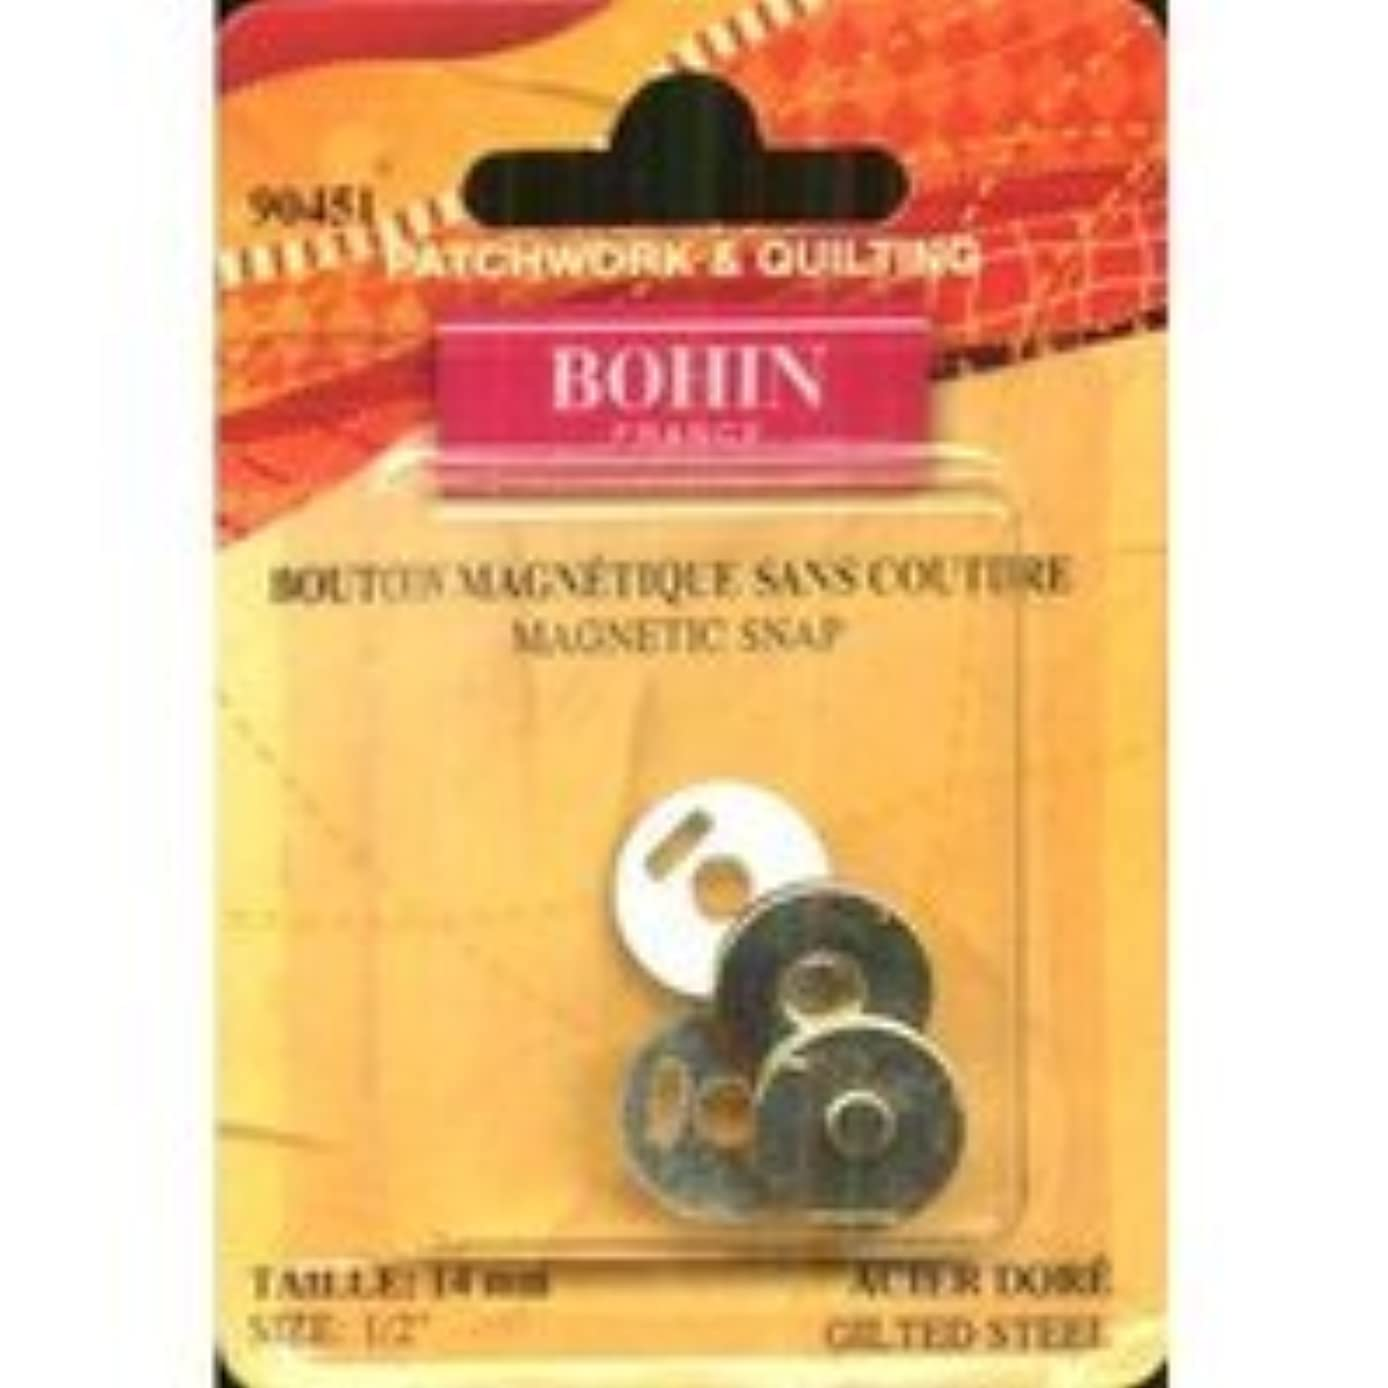 Bohin Magnetic Snap Gilted